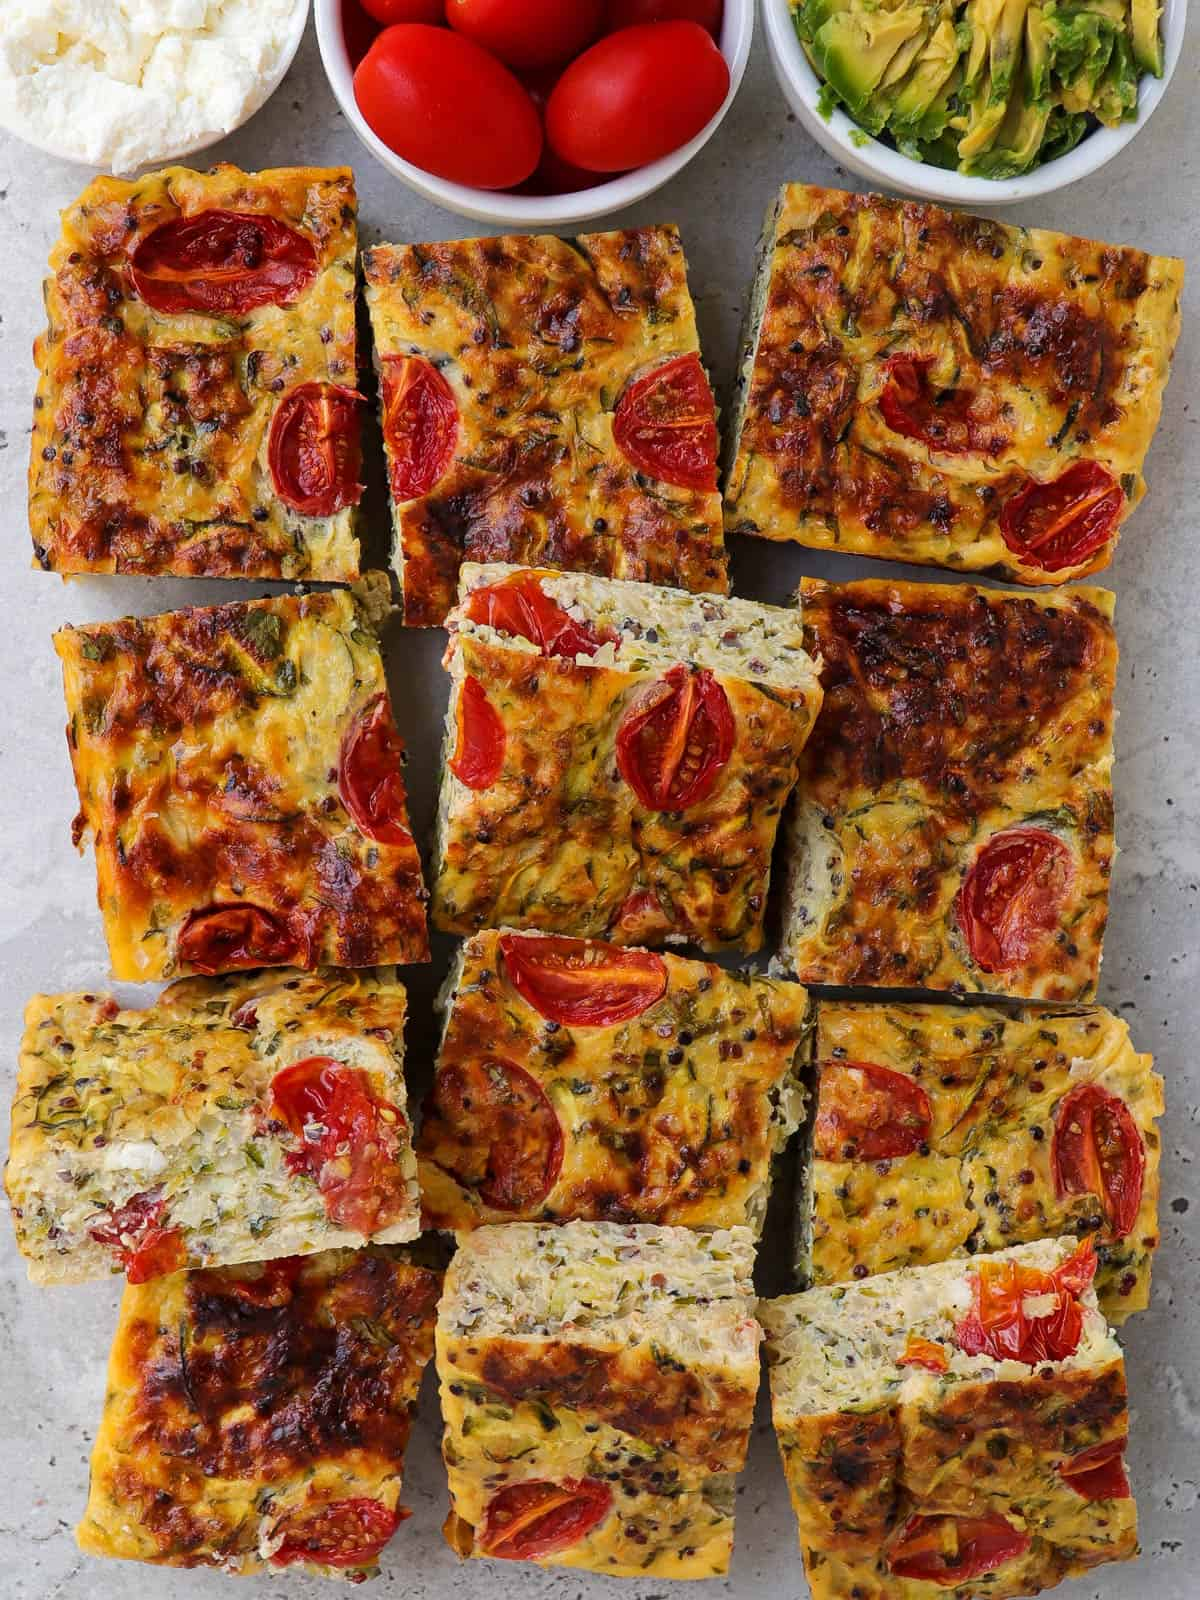 Cooked zucchini slice. Small dishes of cottage cheese, cherry tomatoes and mashed avocado on the top side for decoration.